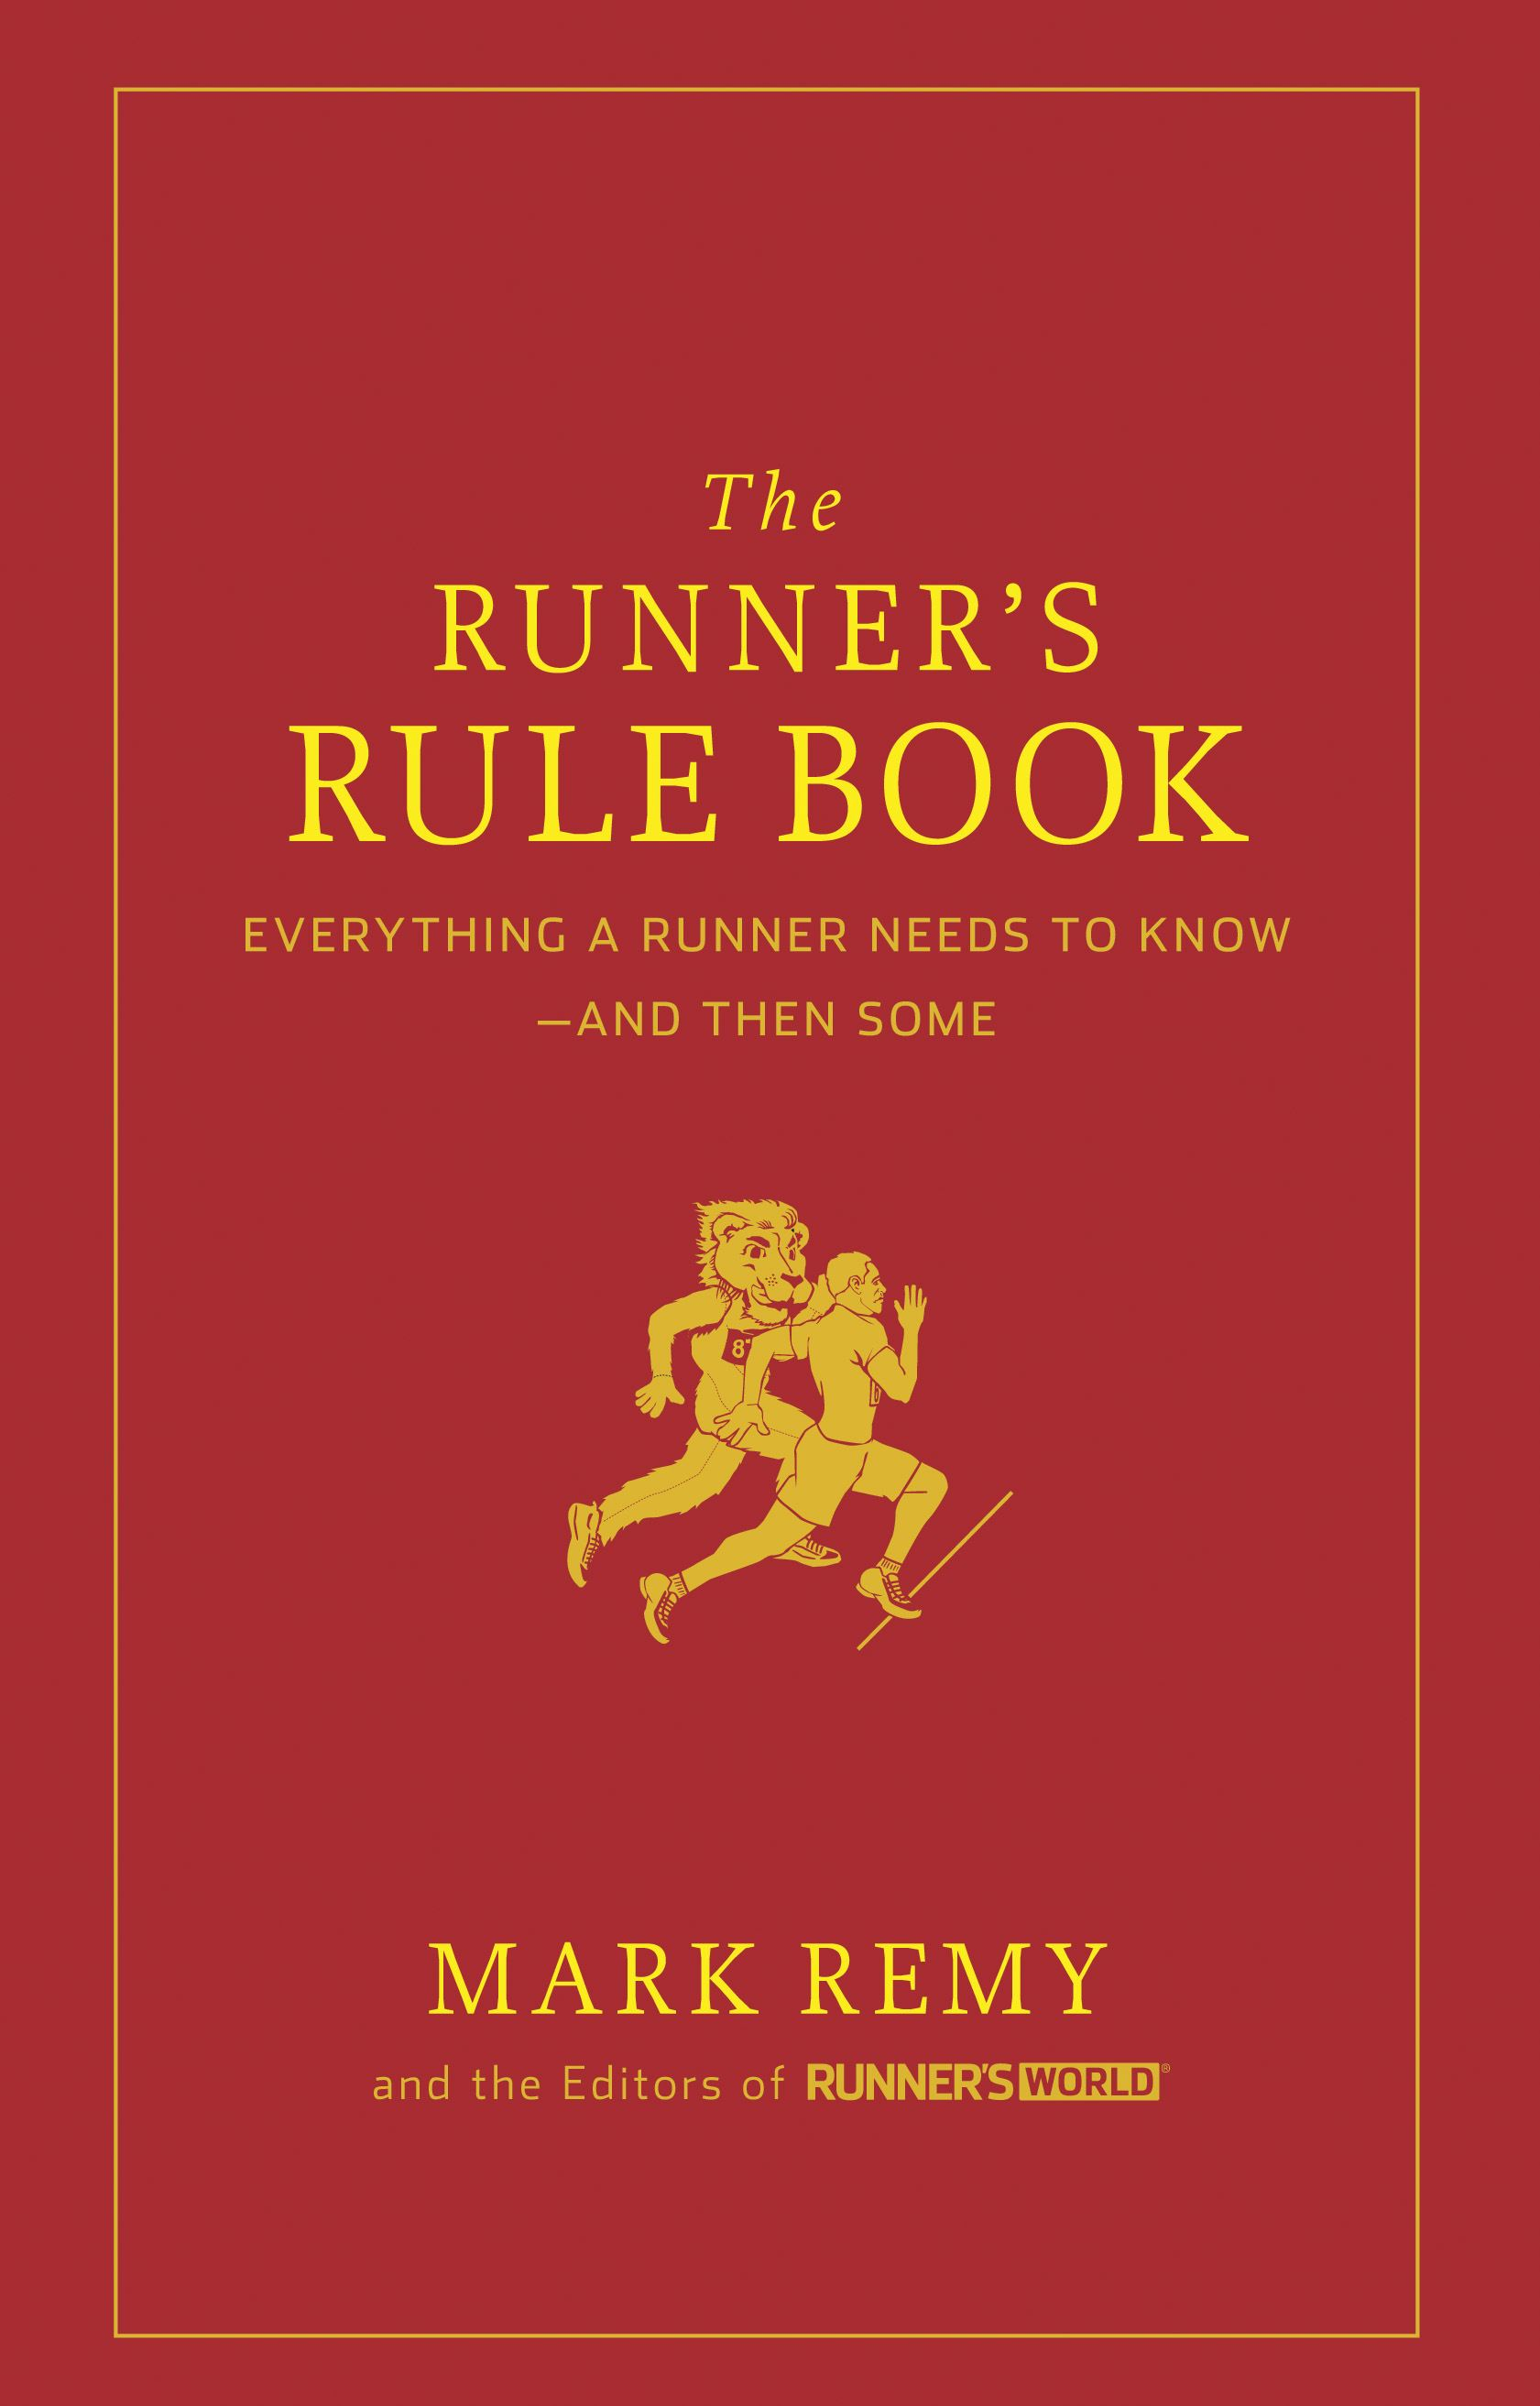 The Runner's Rule Book: Everything a Runner Needs to Know--And Then Some By: Mark Remy,Editors of Runner's World